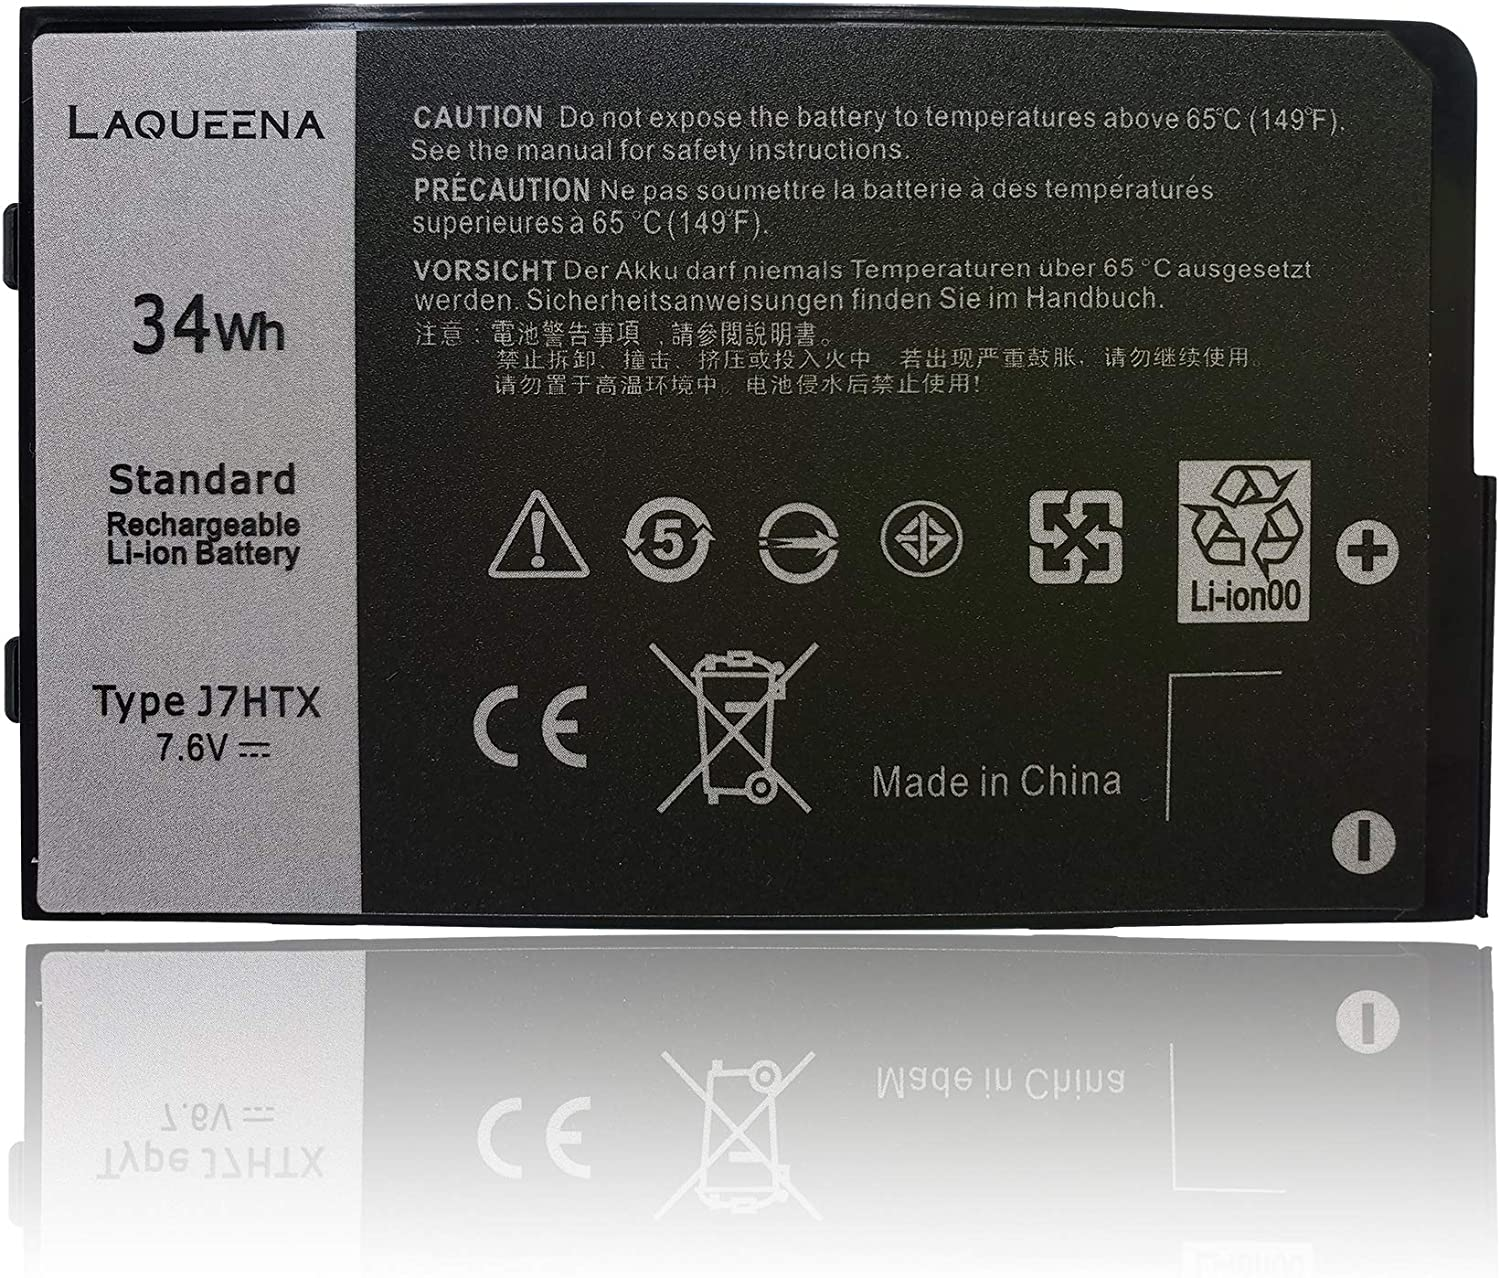 Laqueena J7HTX Laptop Replacement Battery for Dell Latitude 7202 7212 7220 Rugged Extreme Tablet Series Notebook 7XNTR 02JT7D FH8RW 7.6V 34WH/4342MAH 2-Cell